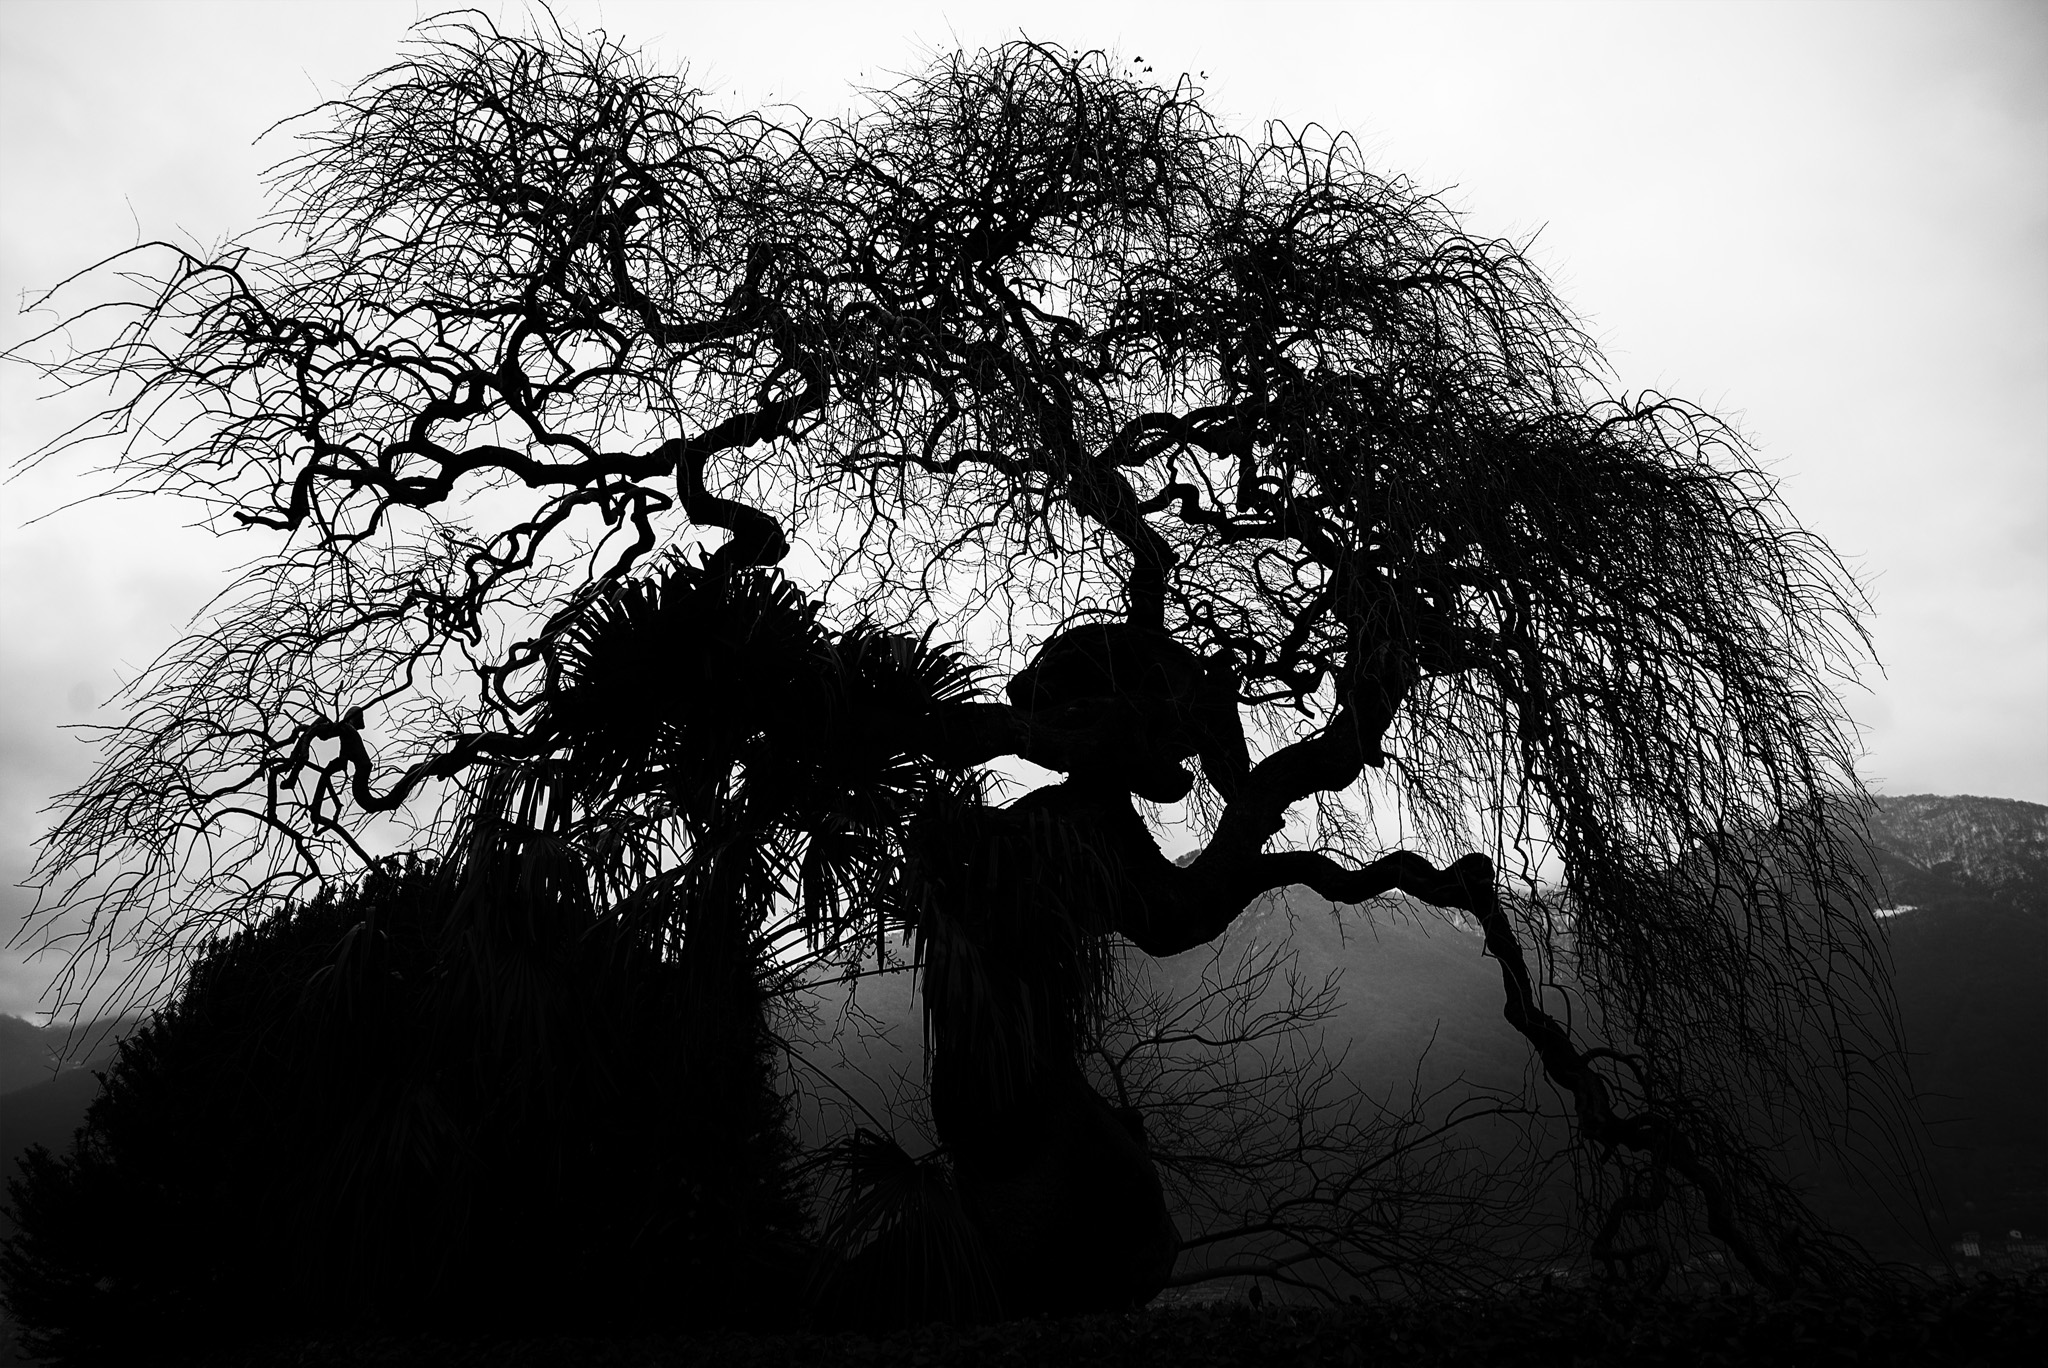 Do you see the silhouetted witch? f/5.0, 1/200th shutter, ISO 100.